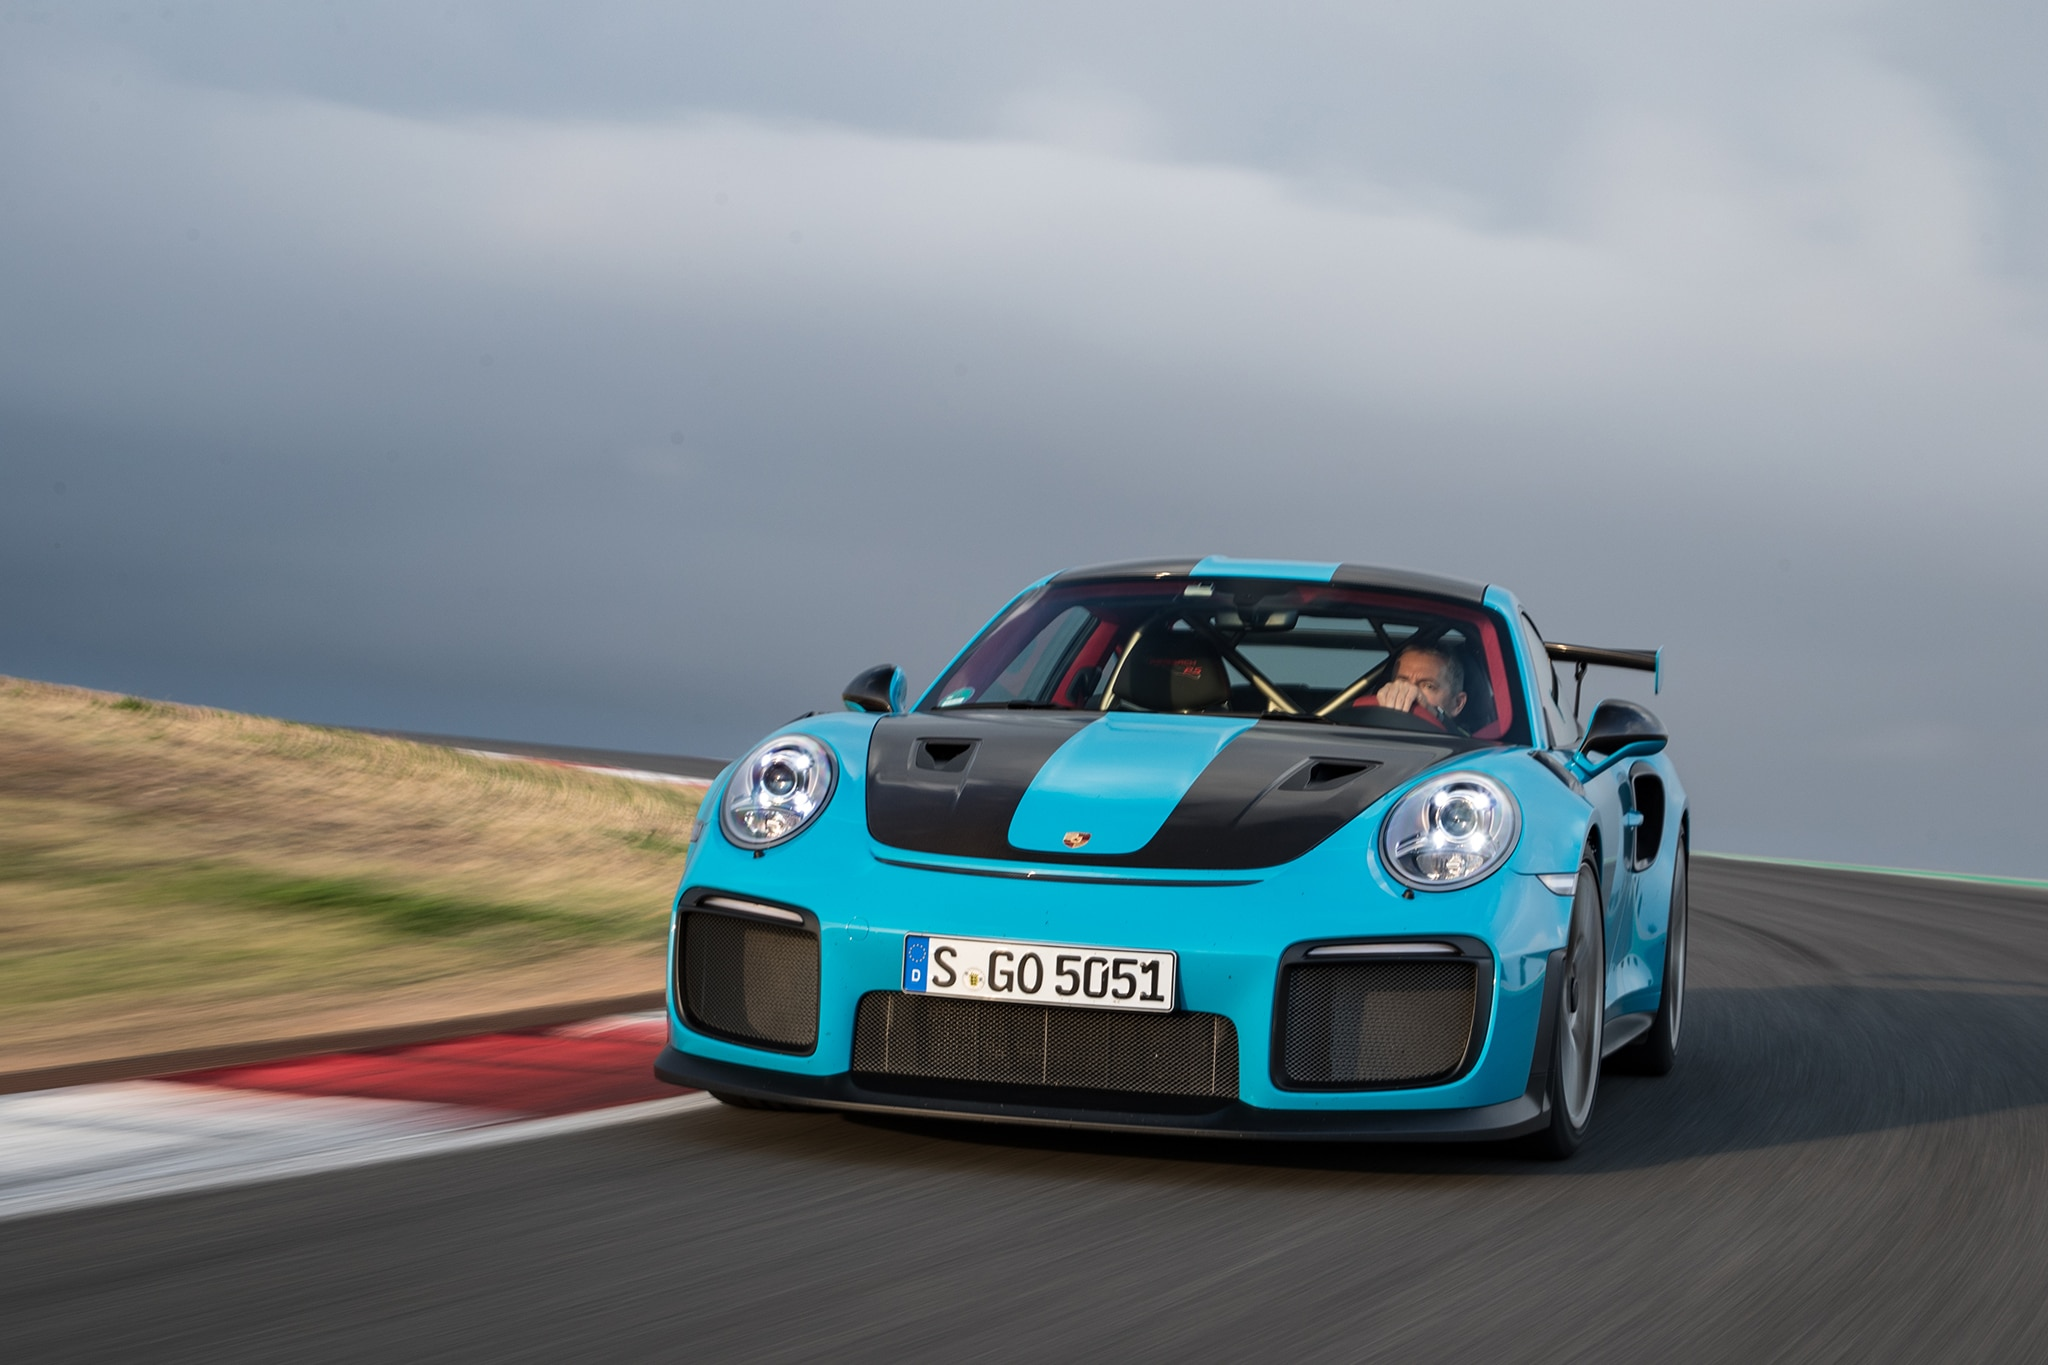 2018 Porsche 911 GT2 RS Front View In Motion 11